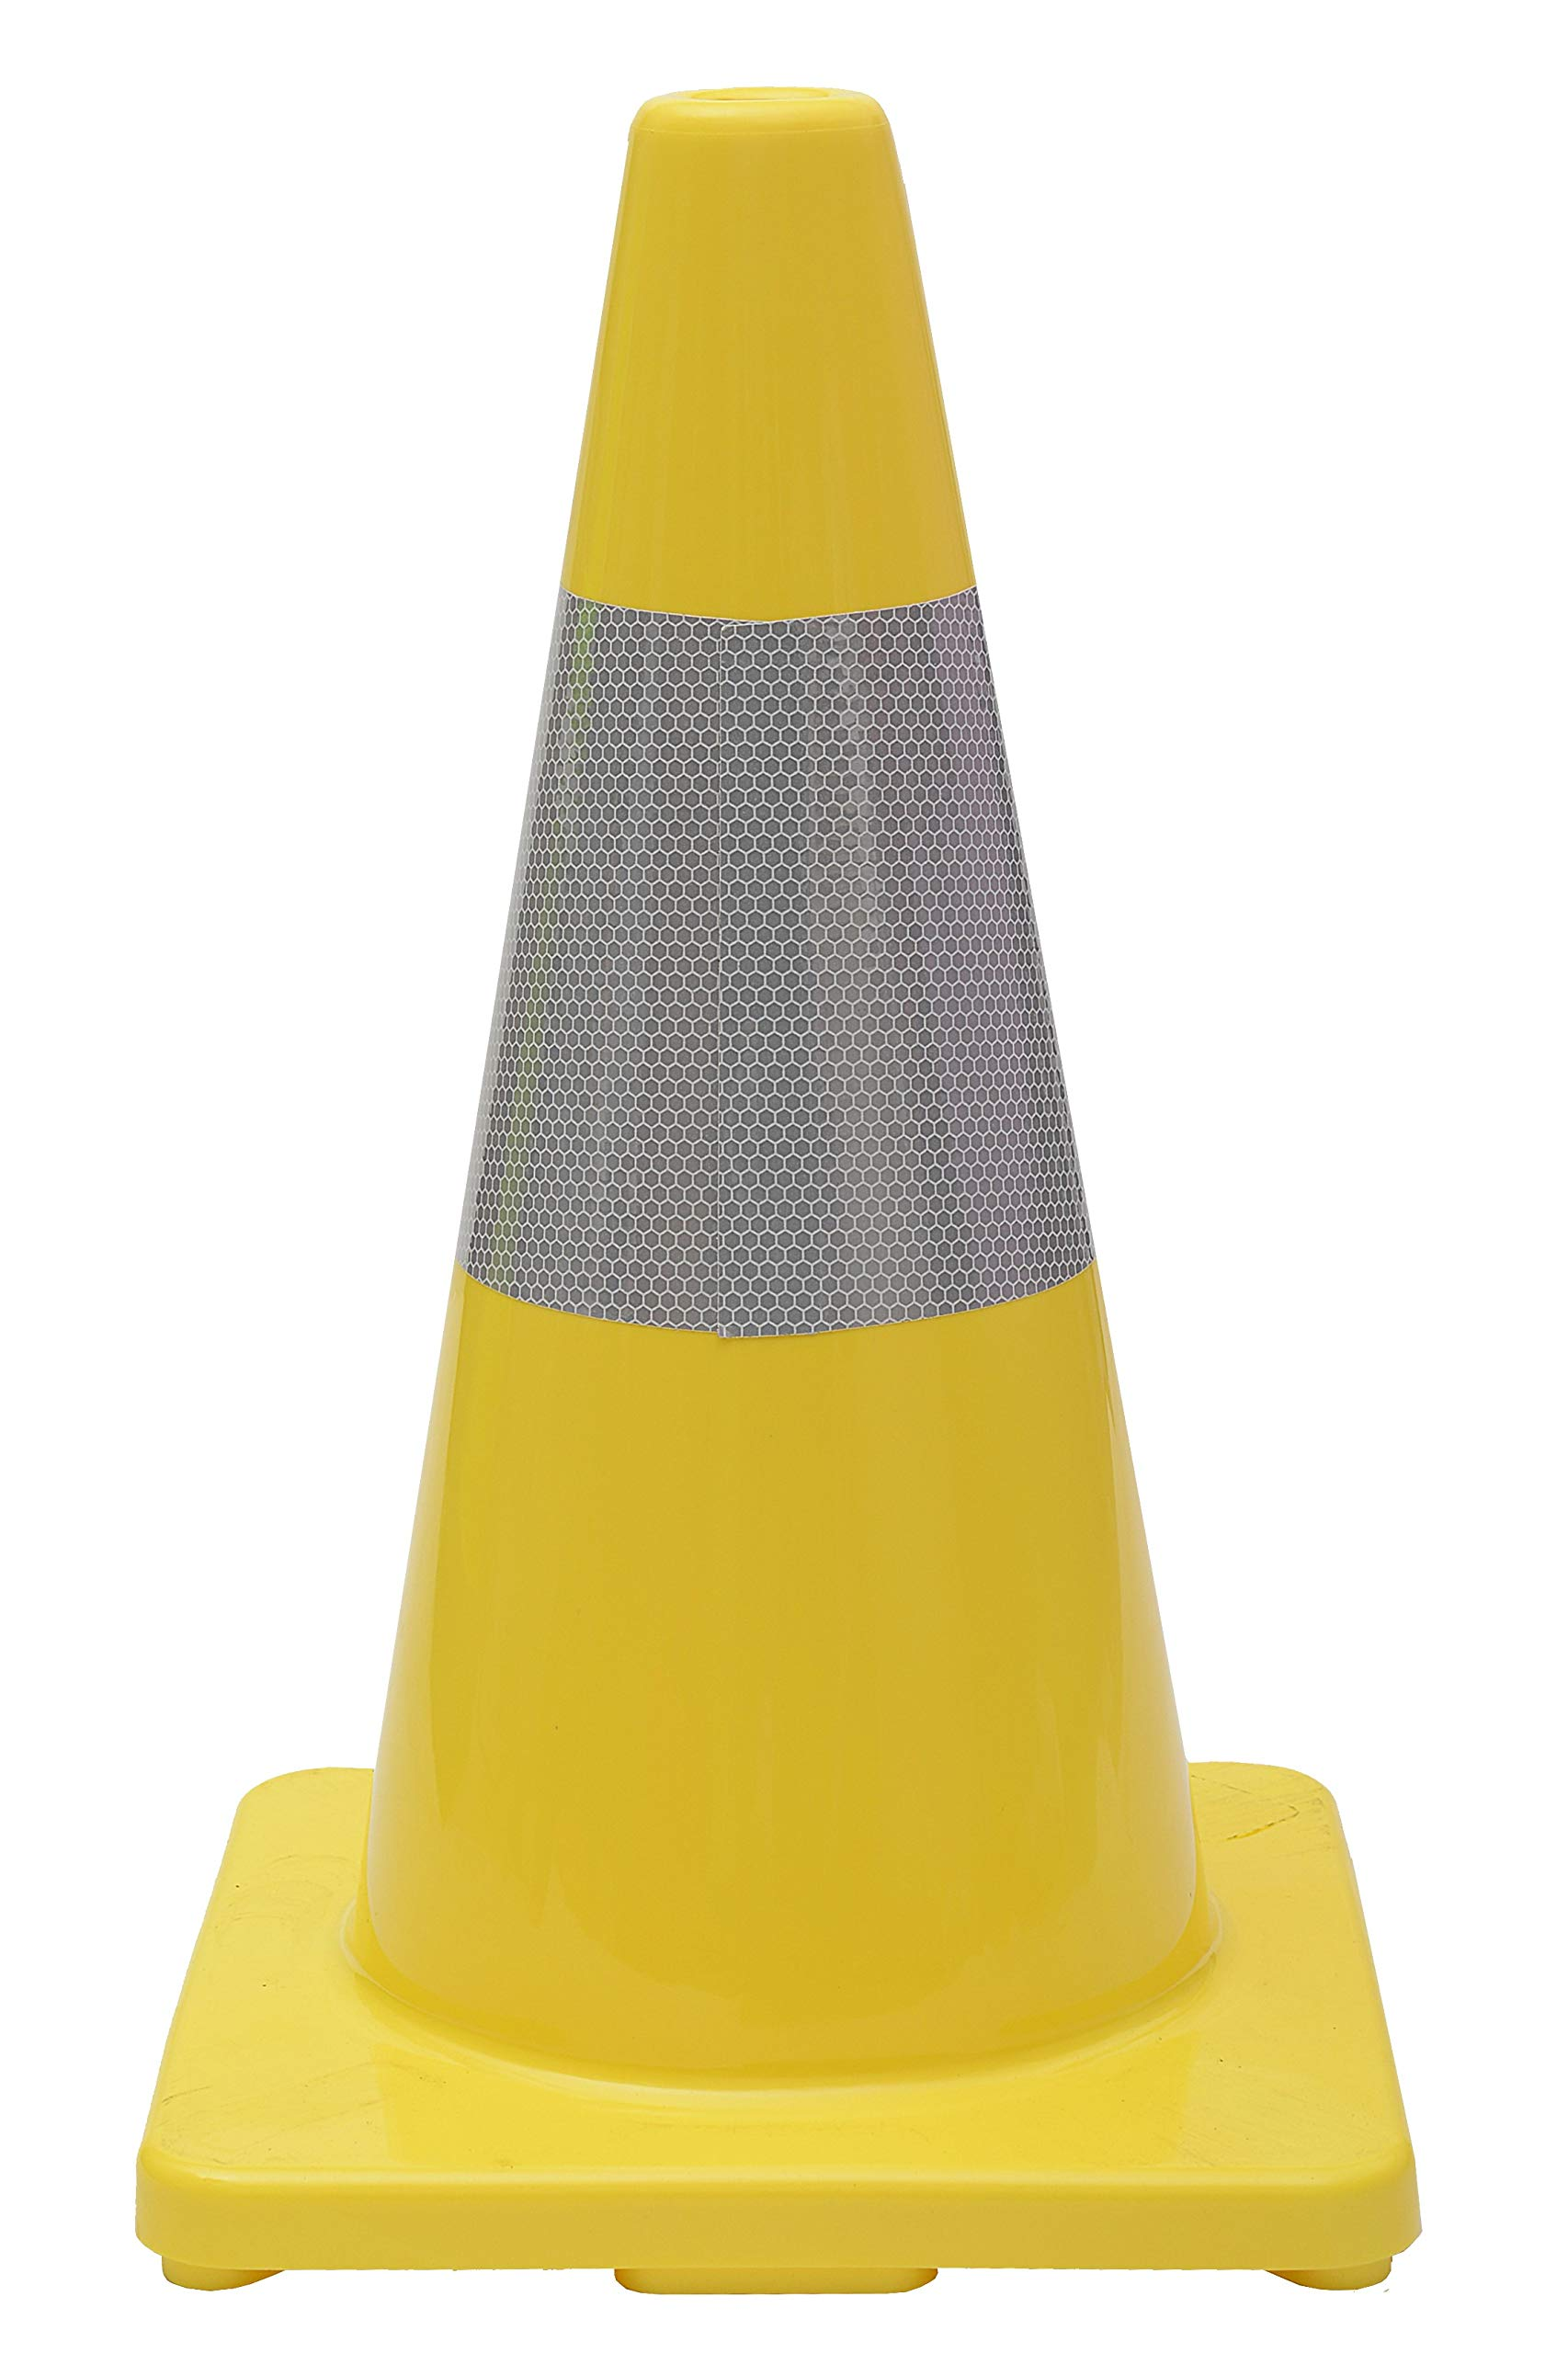 CJ Safety 18'' Yellow PVC Traffic Safety Cones (6 Cones, Yellow with Reflective Collar)